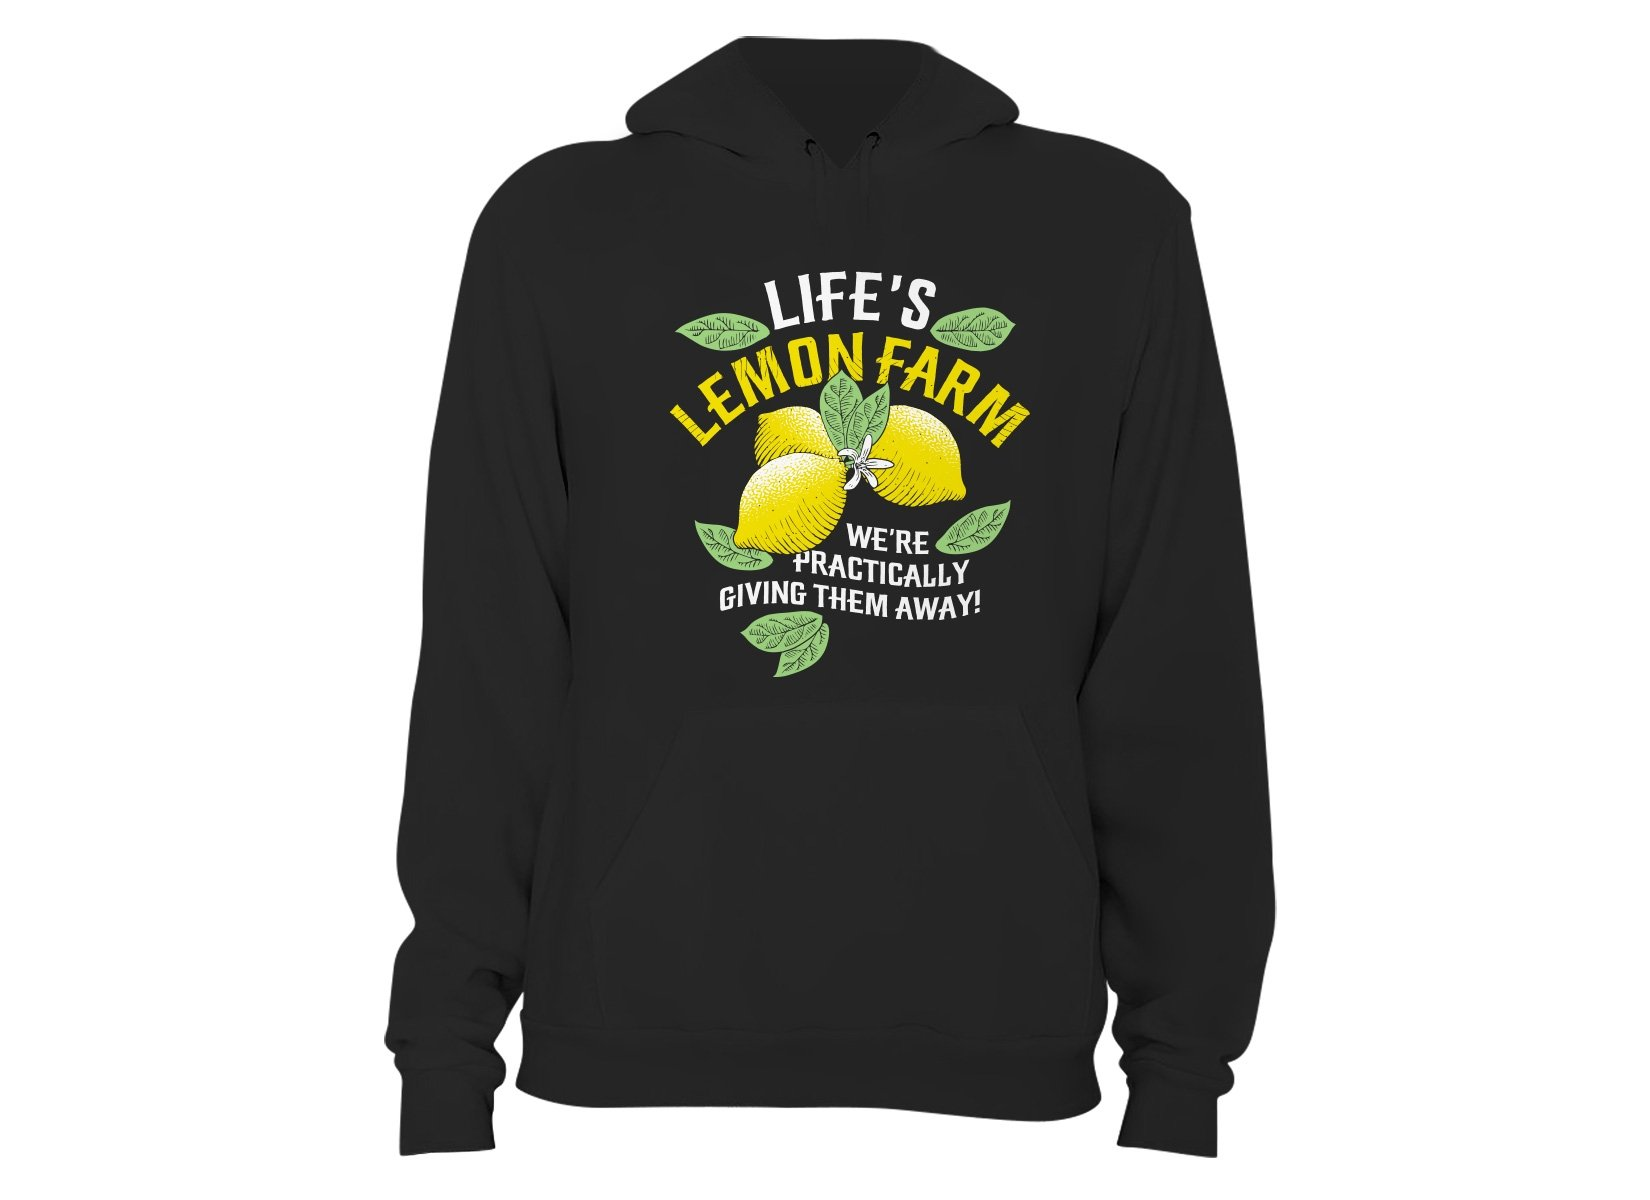 Life's Lemon Farm on Hoodie